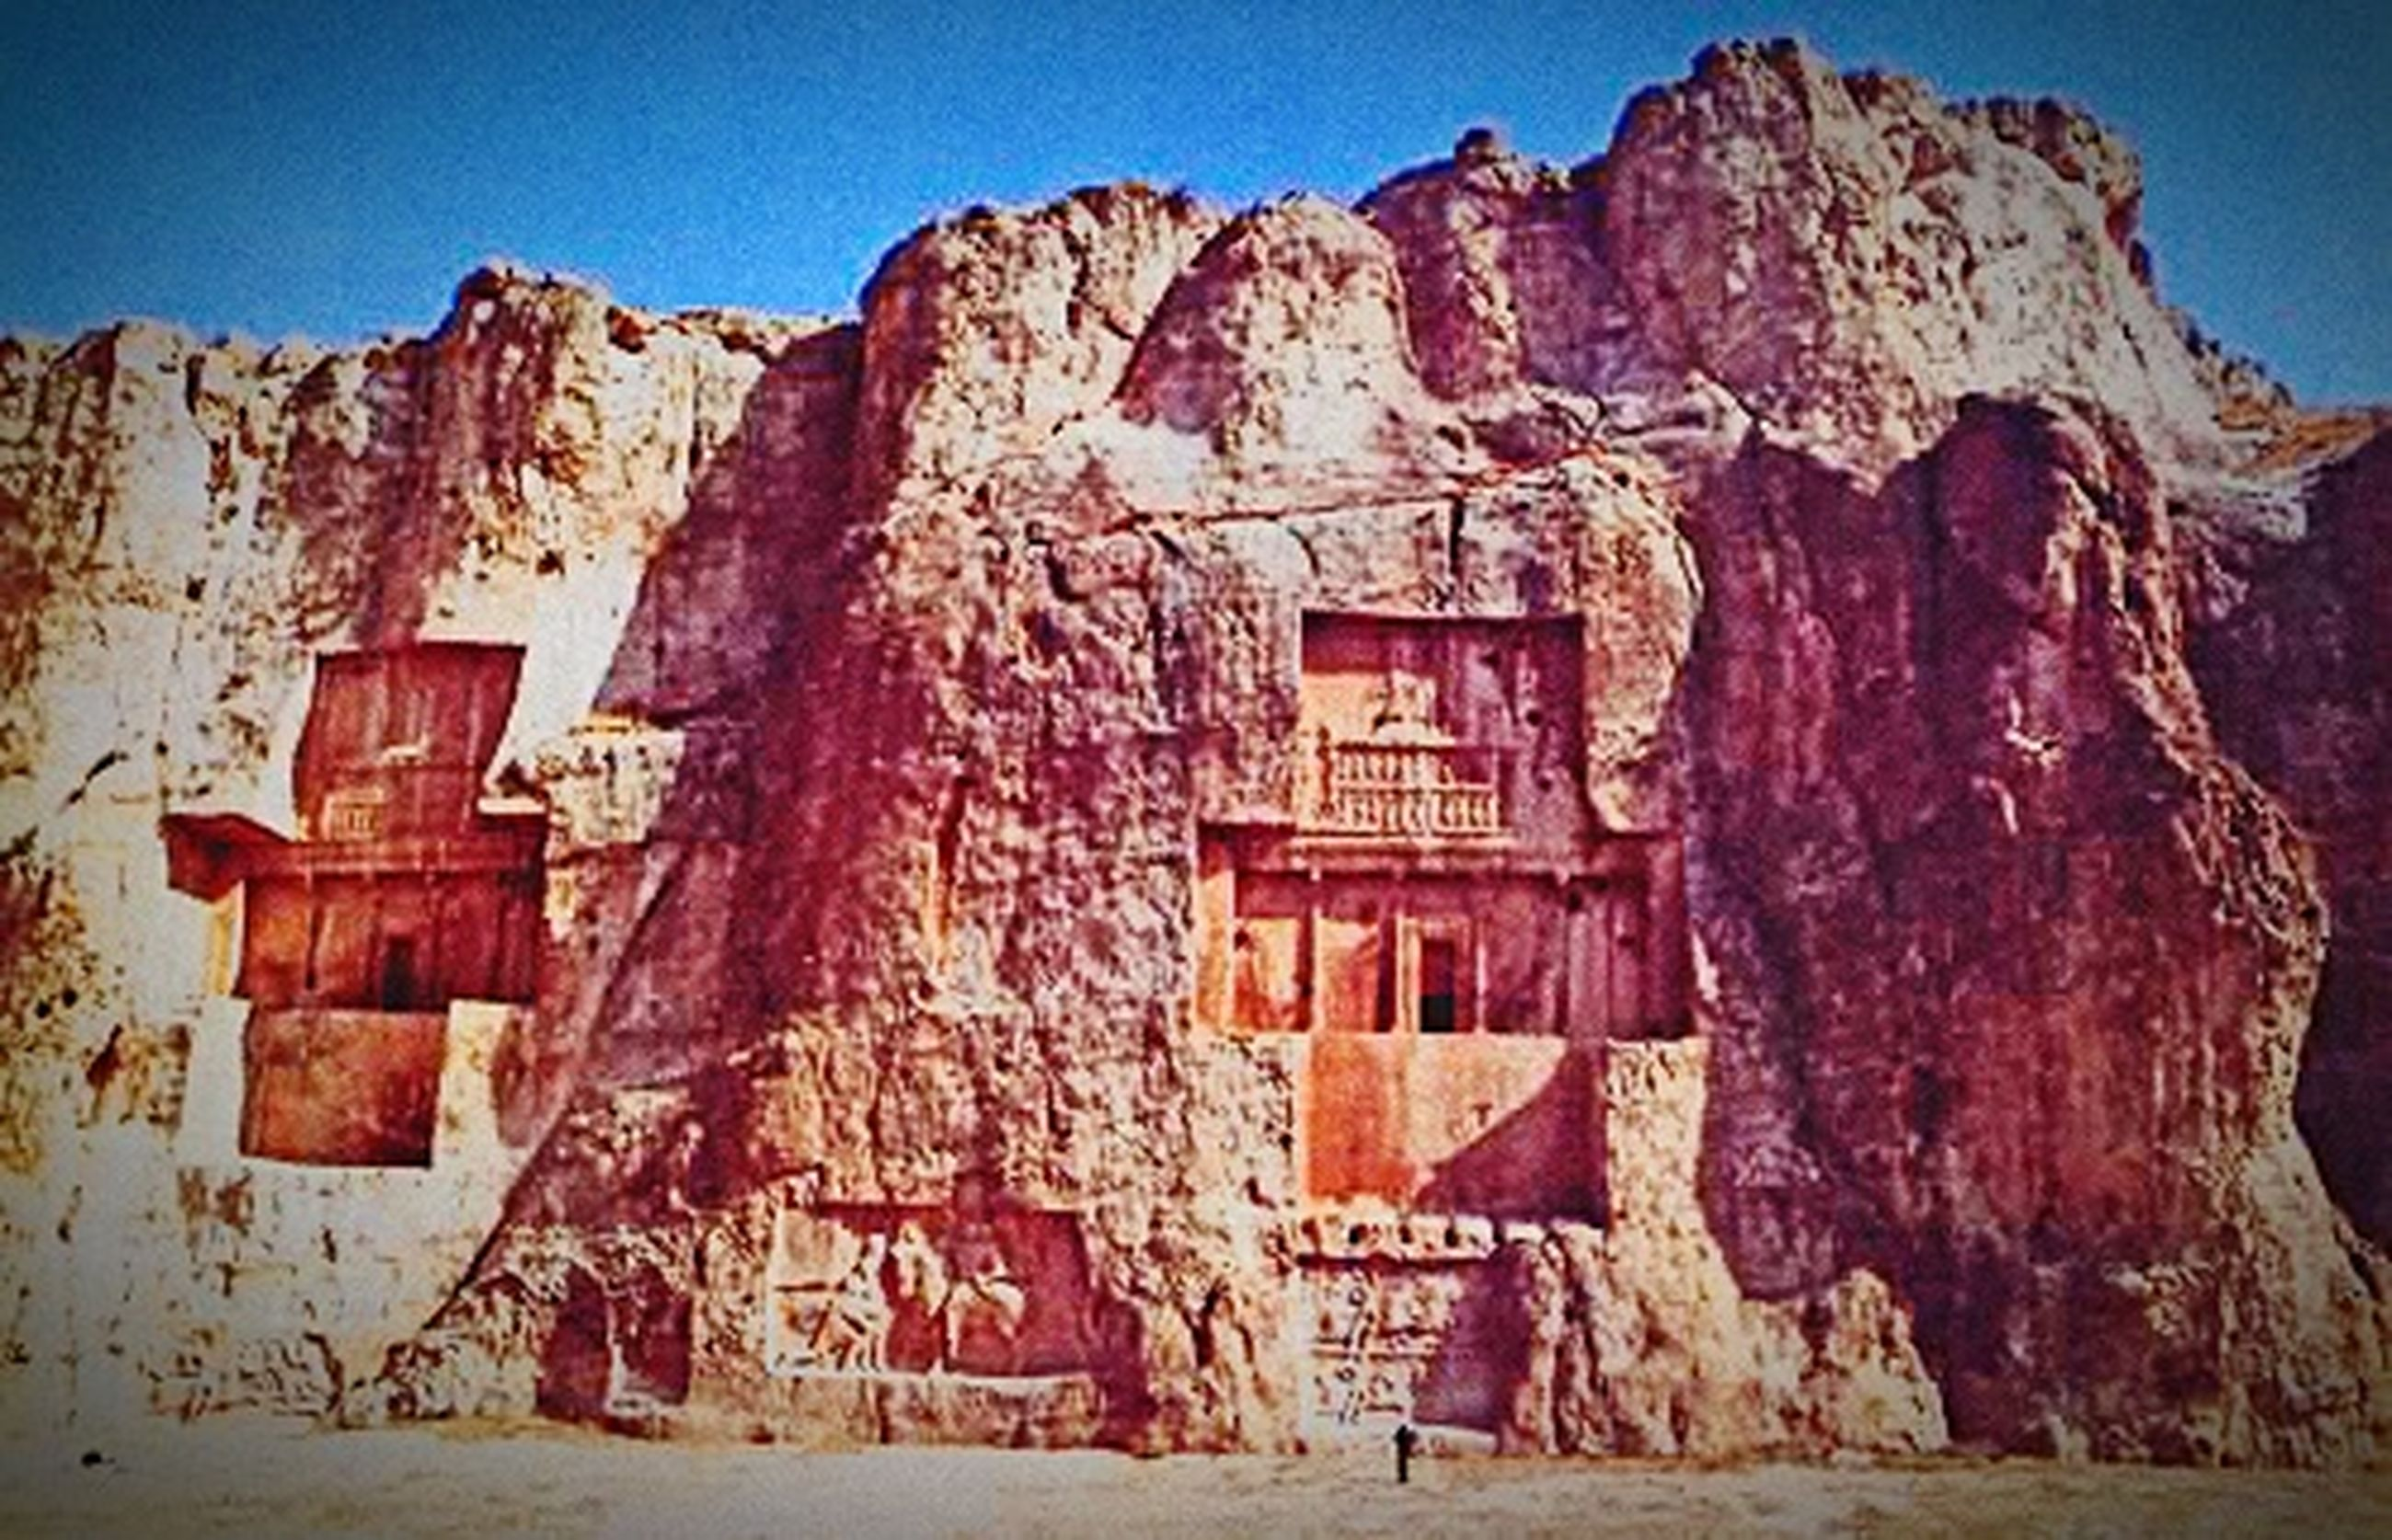 rock formation, mountain, architecture, built structure, blue, clear sky, text, low angle view, rock - object, building exterior, rock, western script, abandoned, weathered, old, day, sunlight, no people, wall, outdoors